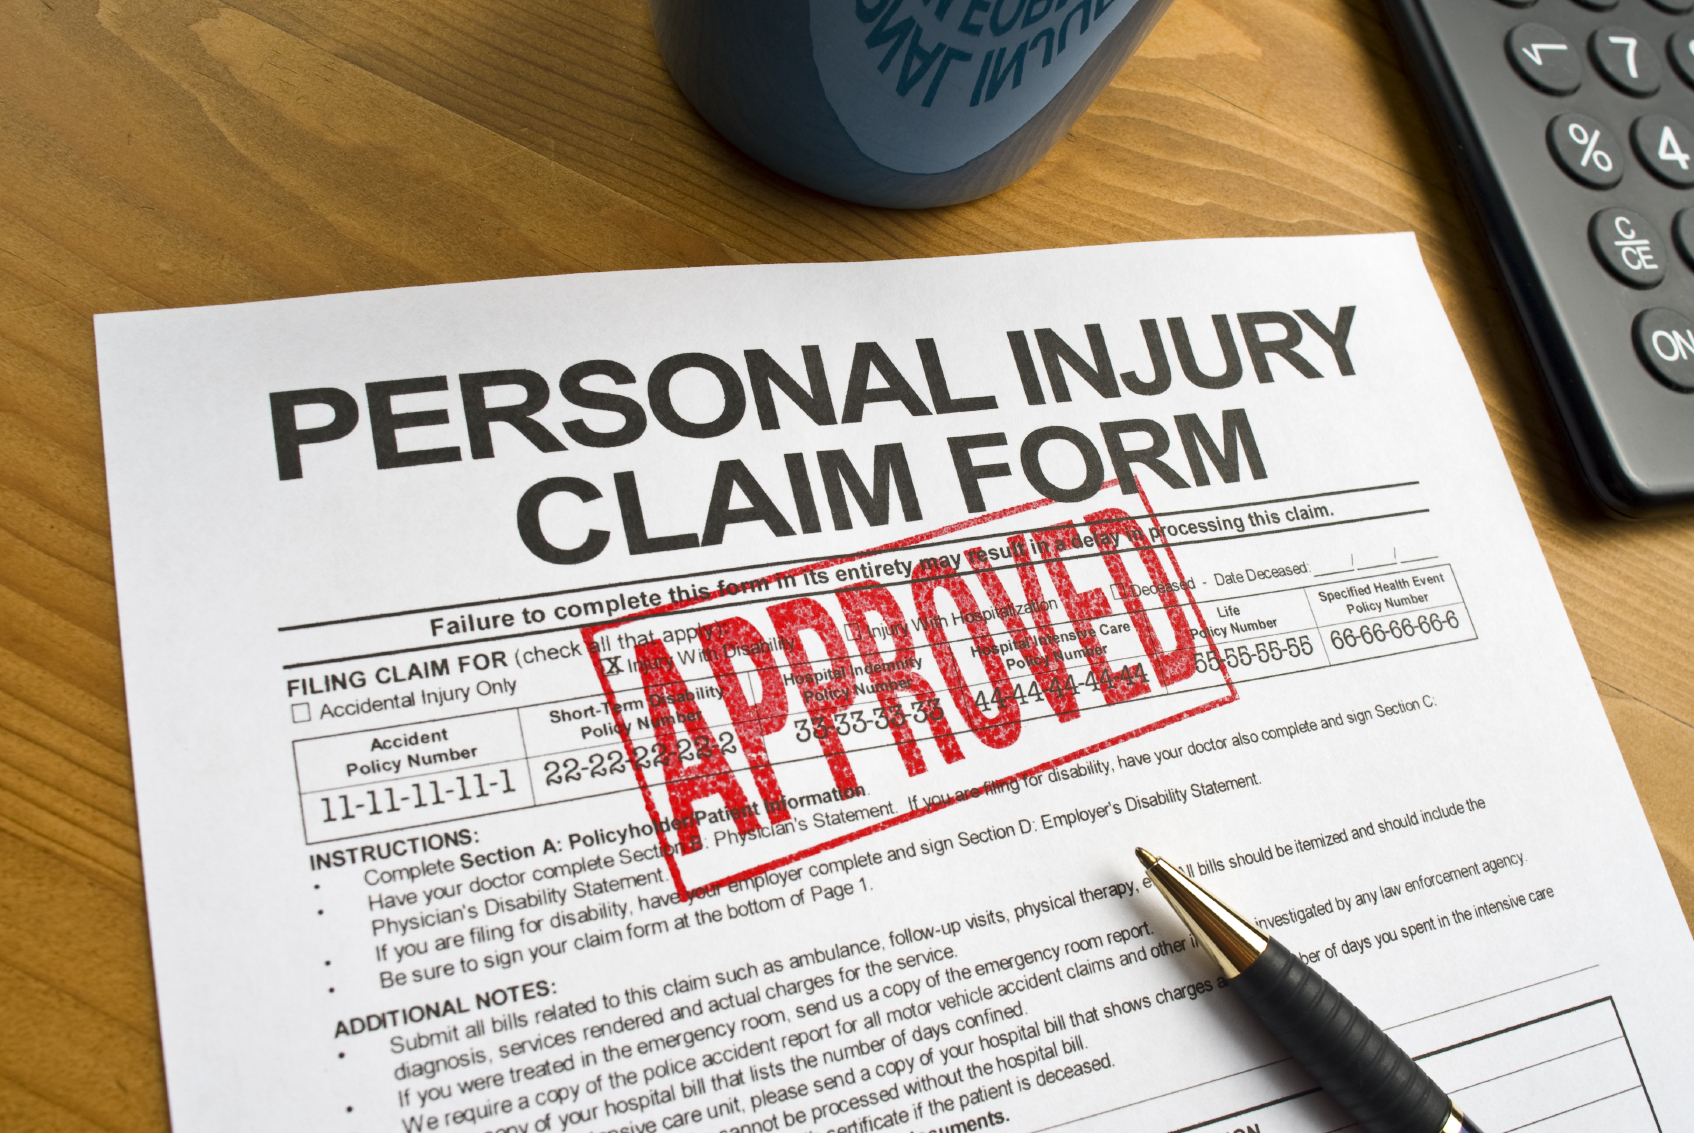 Compensation - How Much is a Personal Injury Lawsuit Worth?